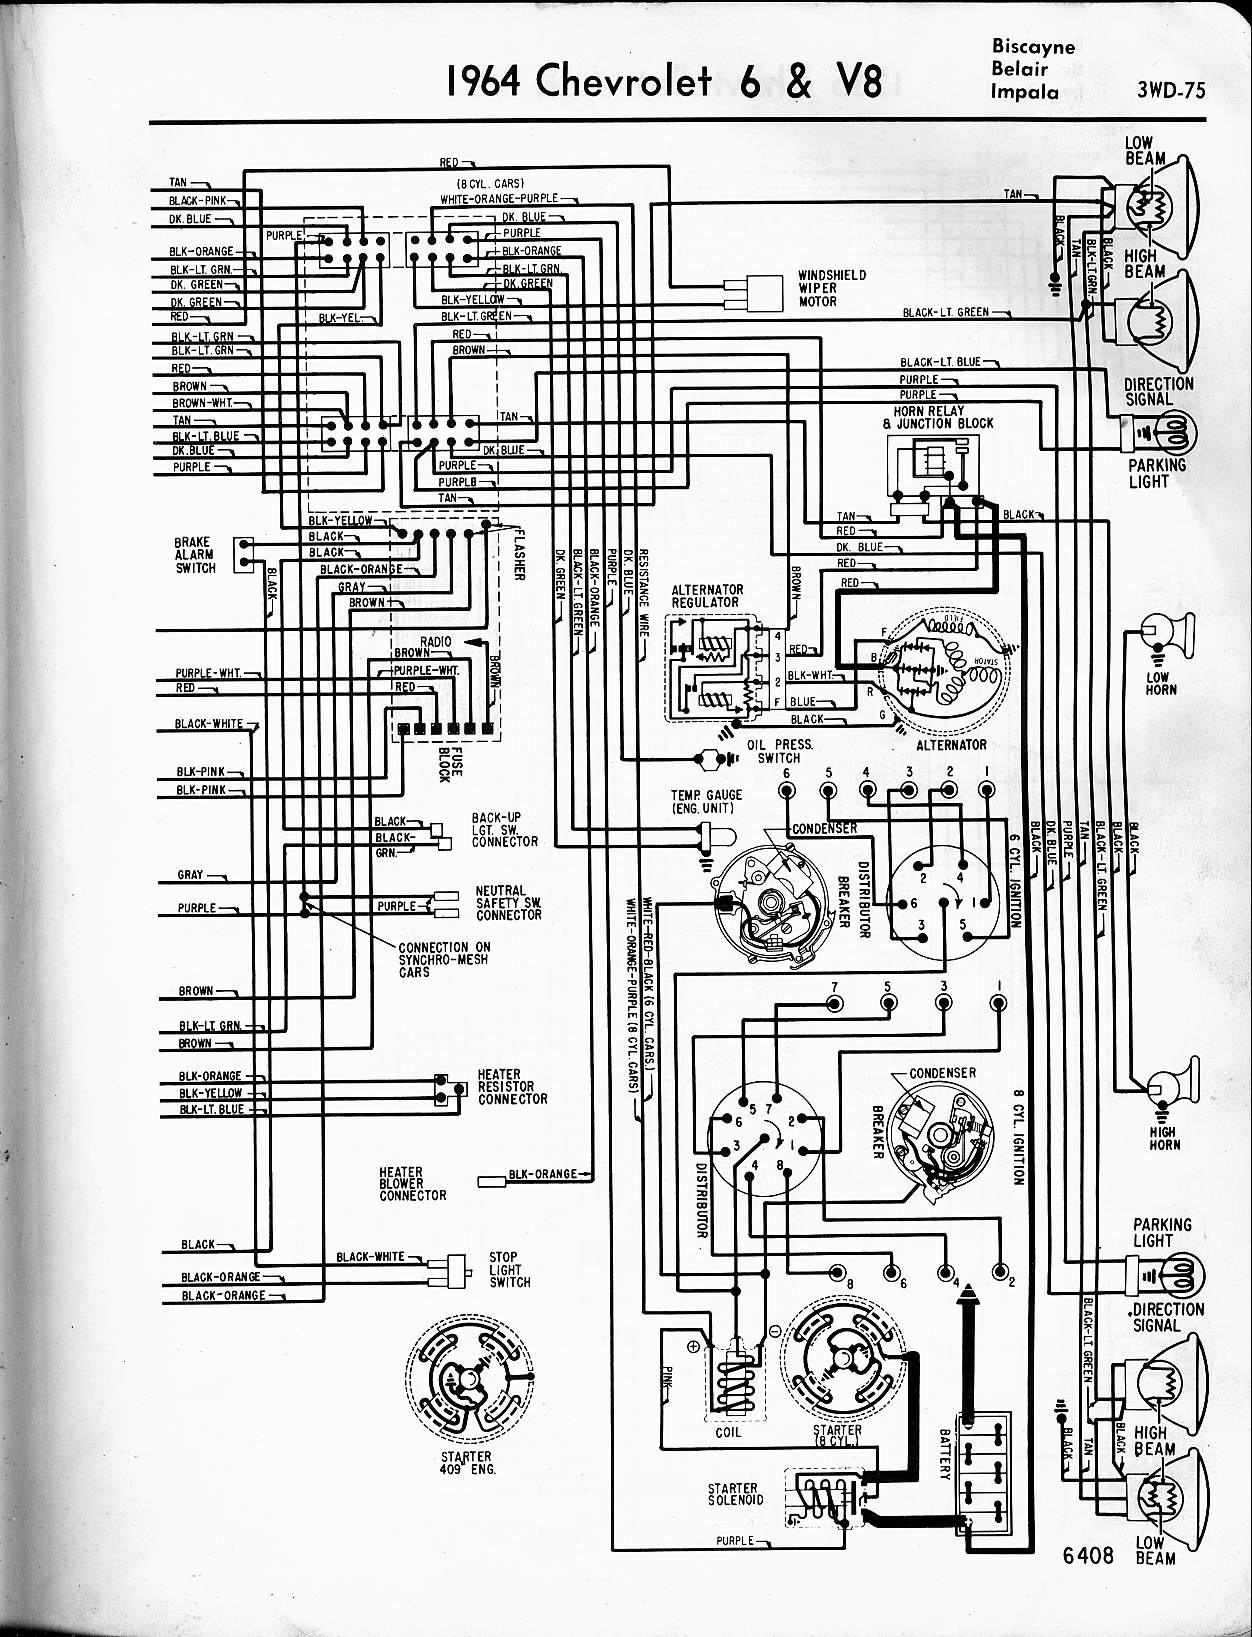 1964 chevy pickup wiring diagram wiring diagram todaysignition switch wiring diagram for 1964 chevy c10 wiring schematic chevy wiring harness diagram 1960 chevrolet